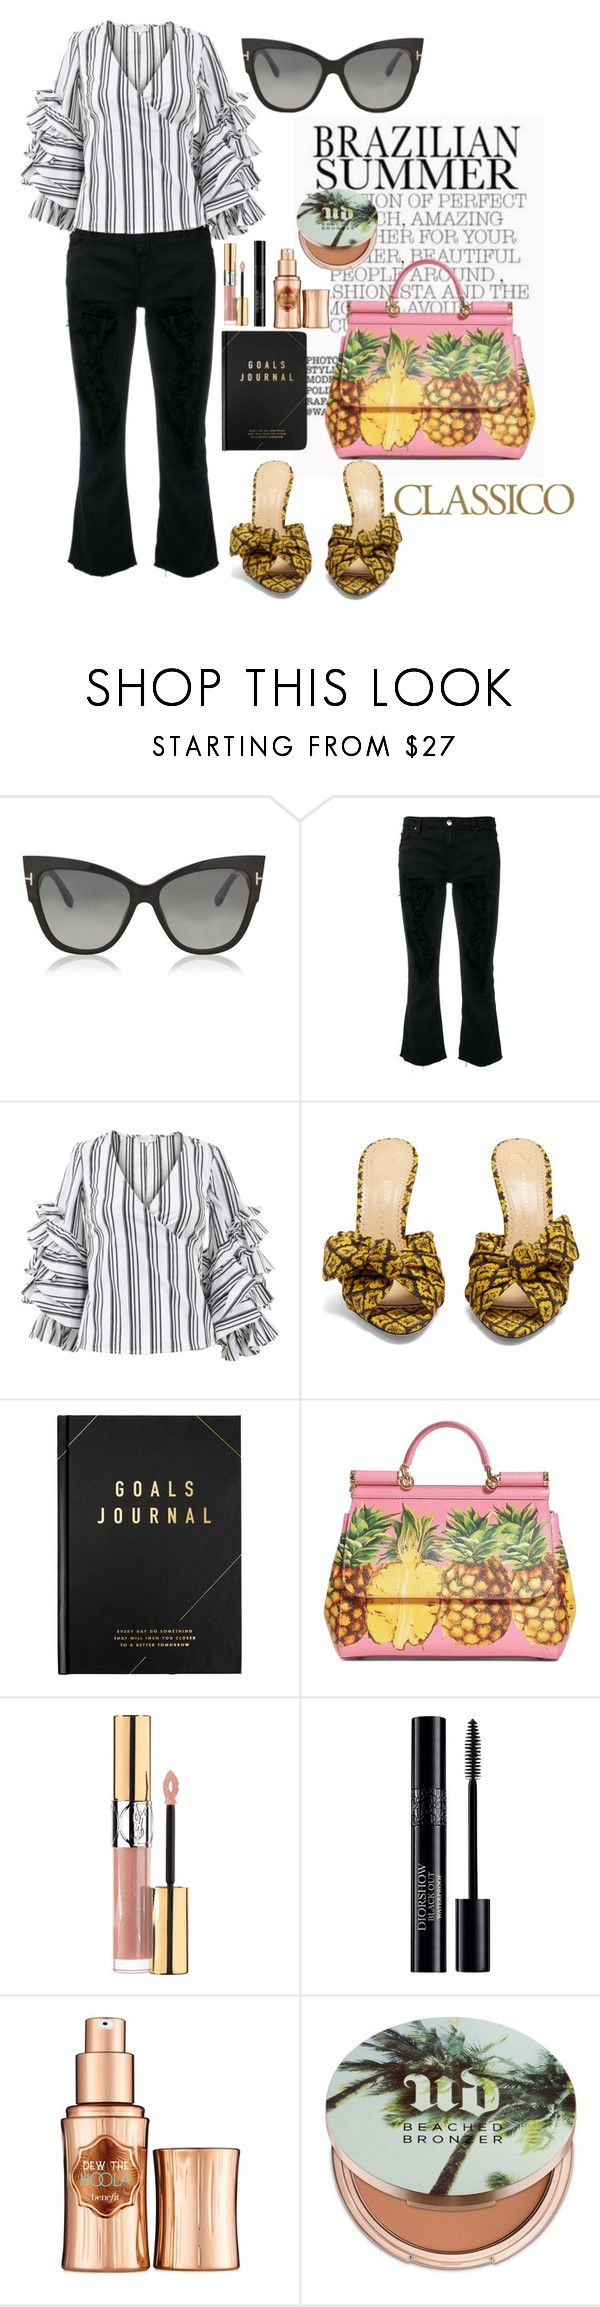 """Copacabana"" by tag-noheuer ❤ liked on Polyvore featuring Tom Ford, IRO, Caroline Constas, Charlotte Olympia, kikki.K, Dolce&Gabbana, Yves Saint Laurent, Christian Dior, Benefit and Urban Decay"